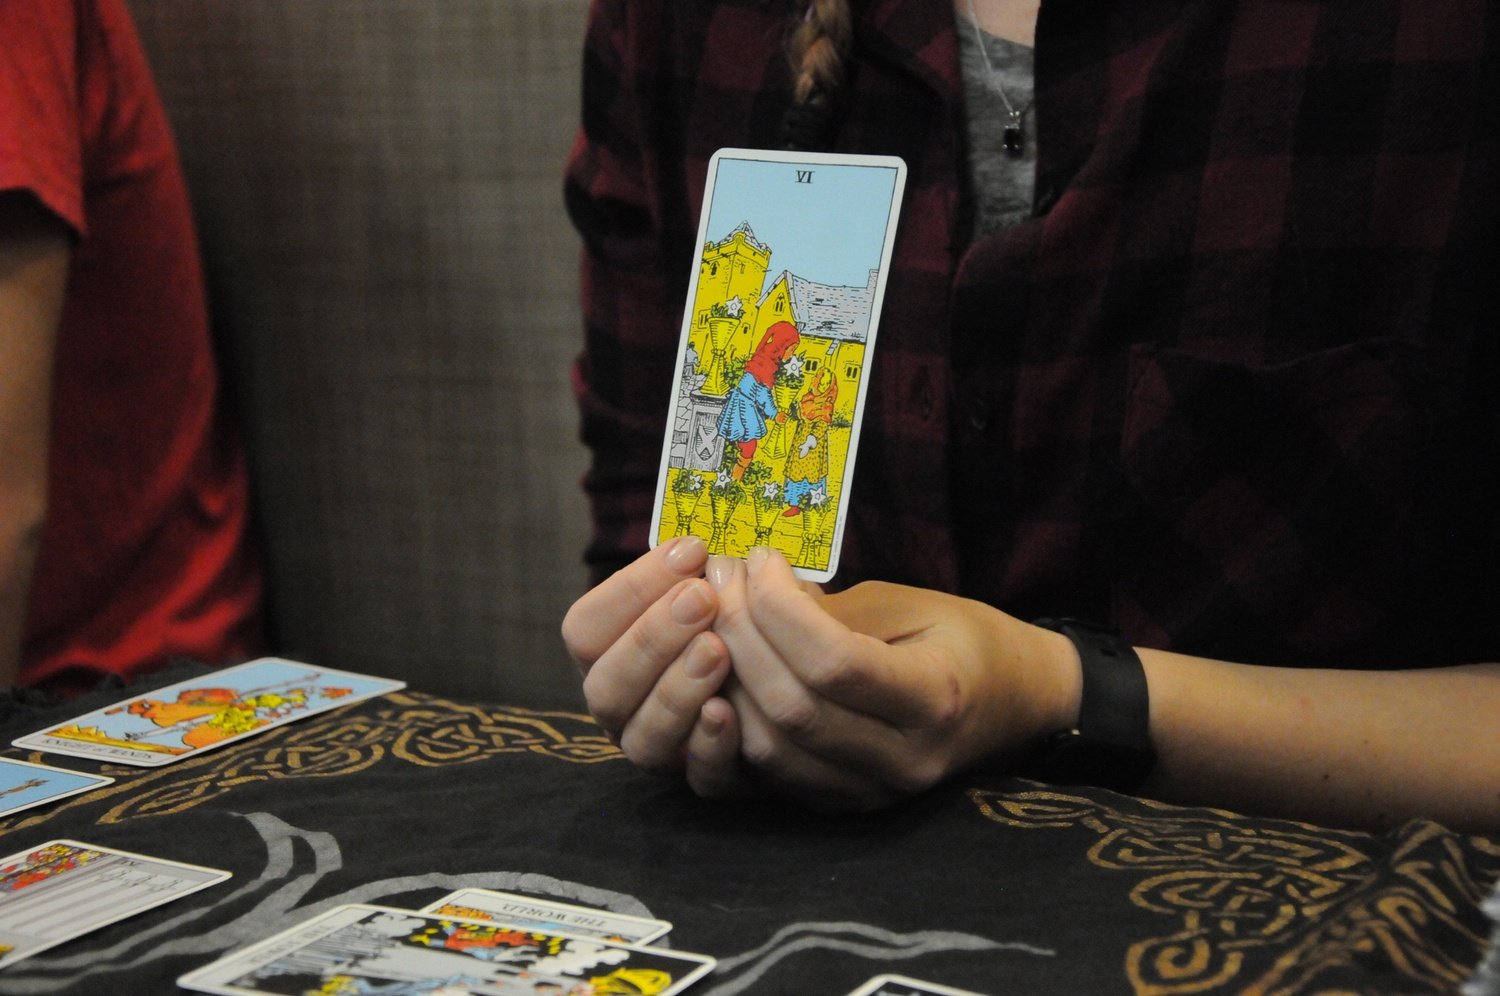 The tarot cards are intricately decorated.